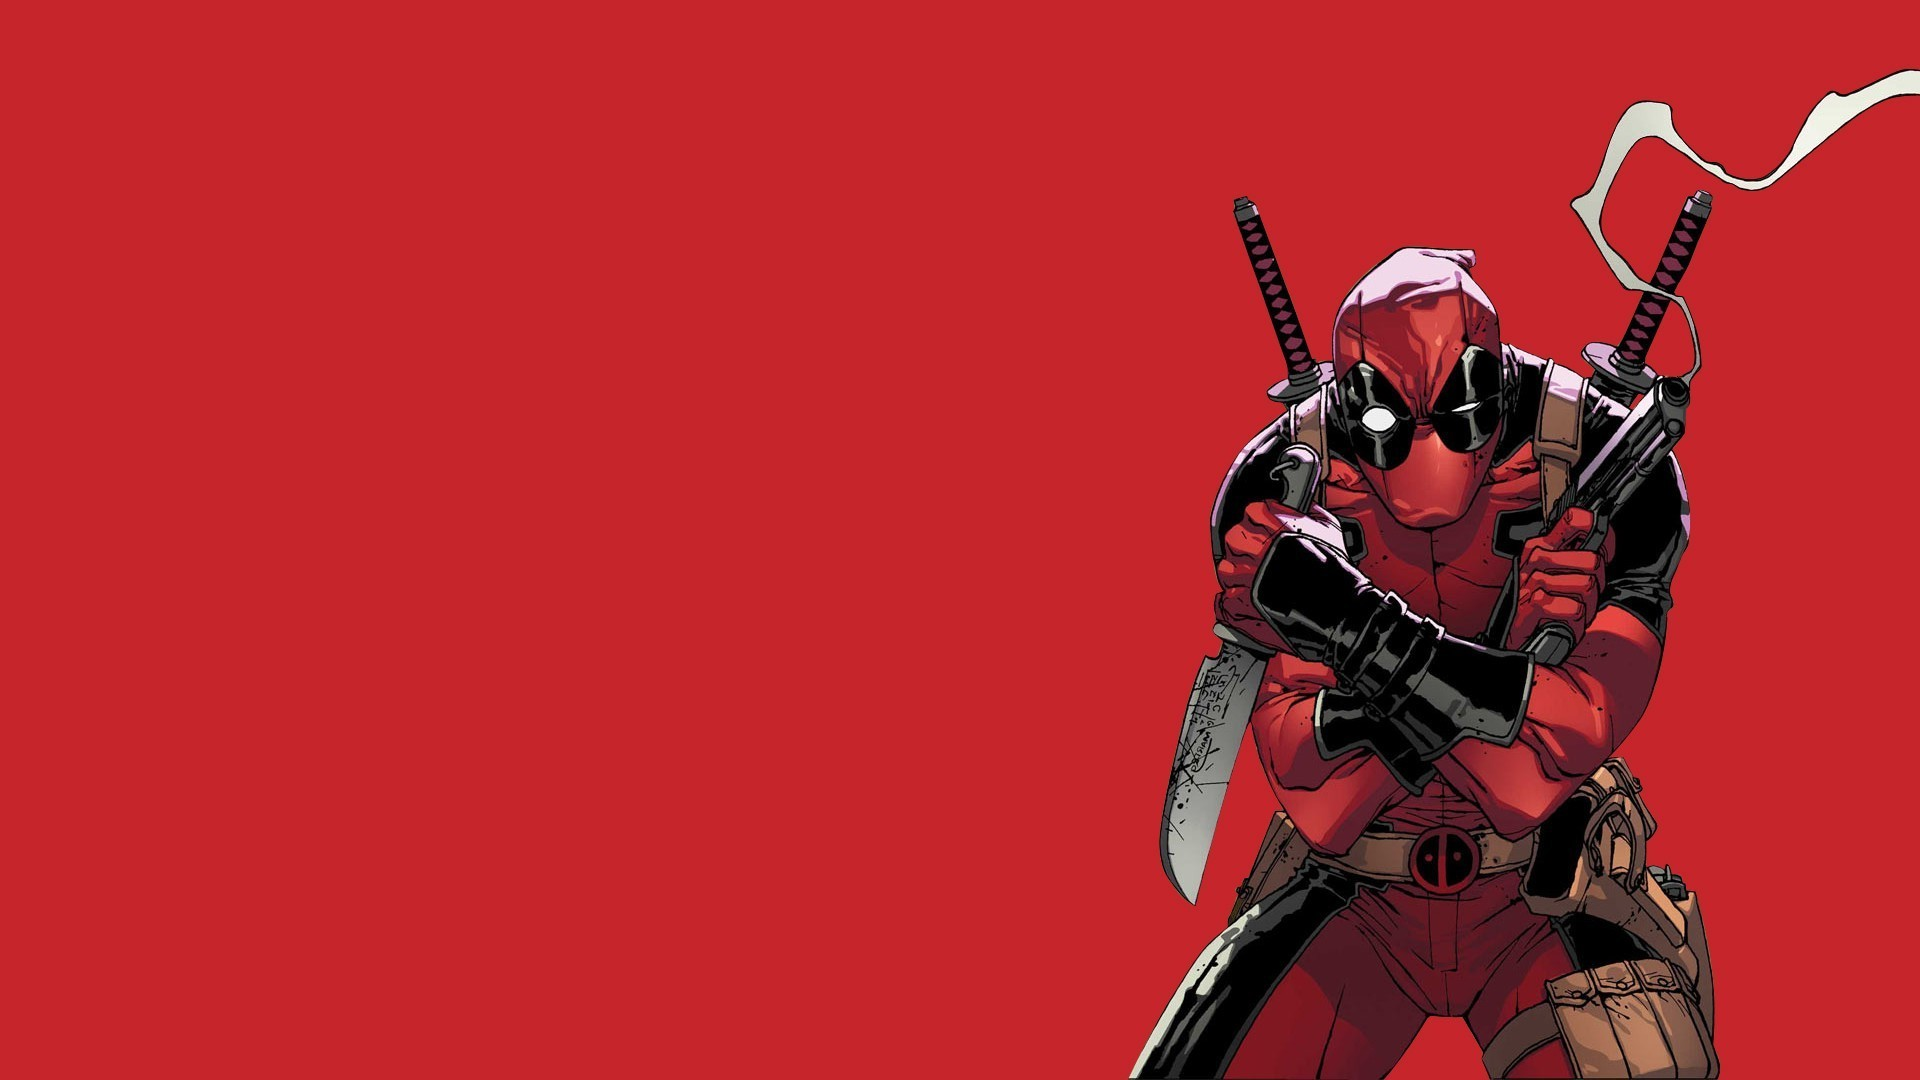 Deadpool and spiderman wallpaper 71 images for Deadpool wallpaper 1920x1080